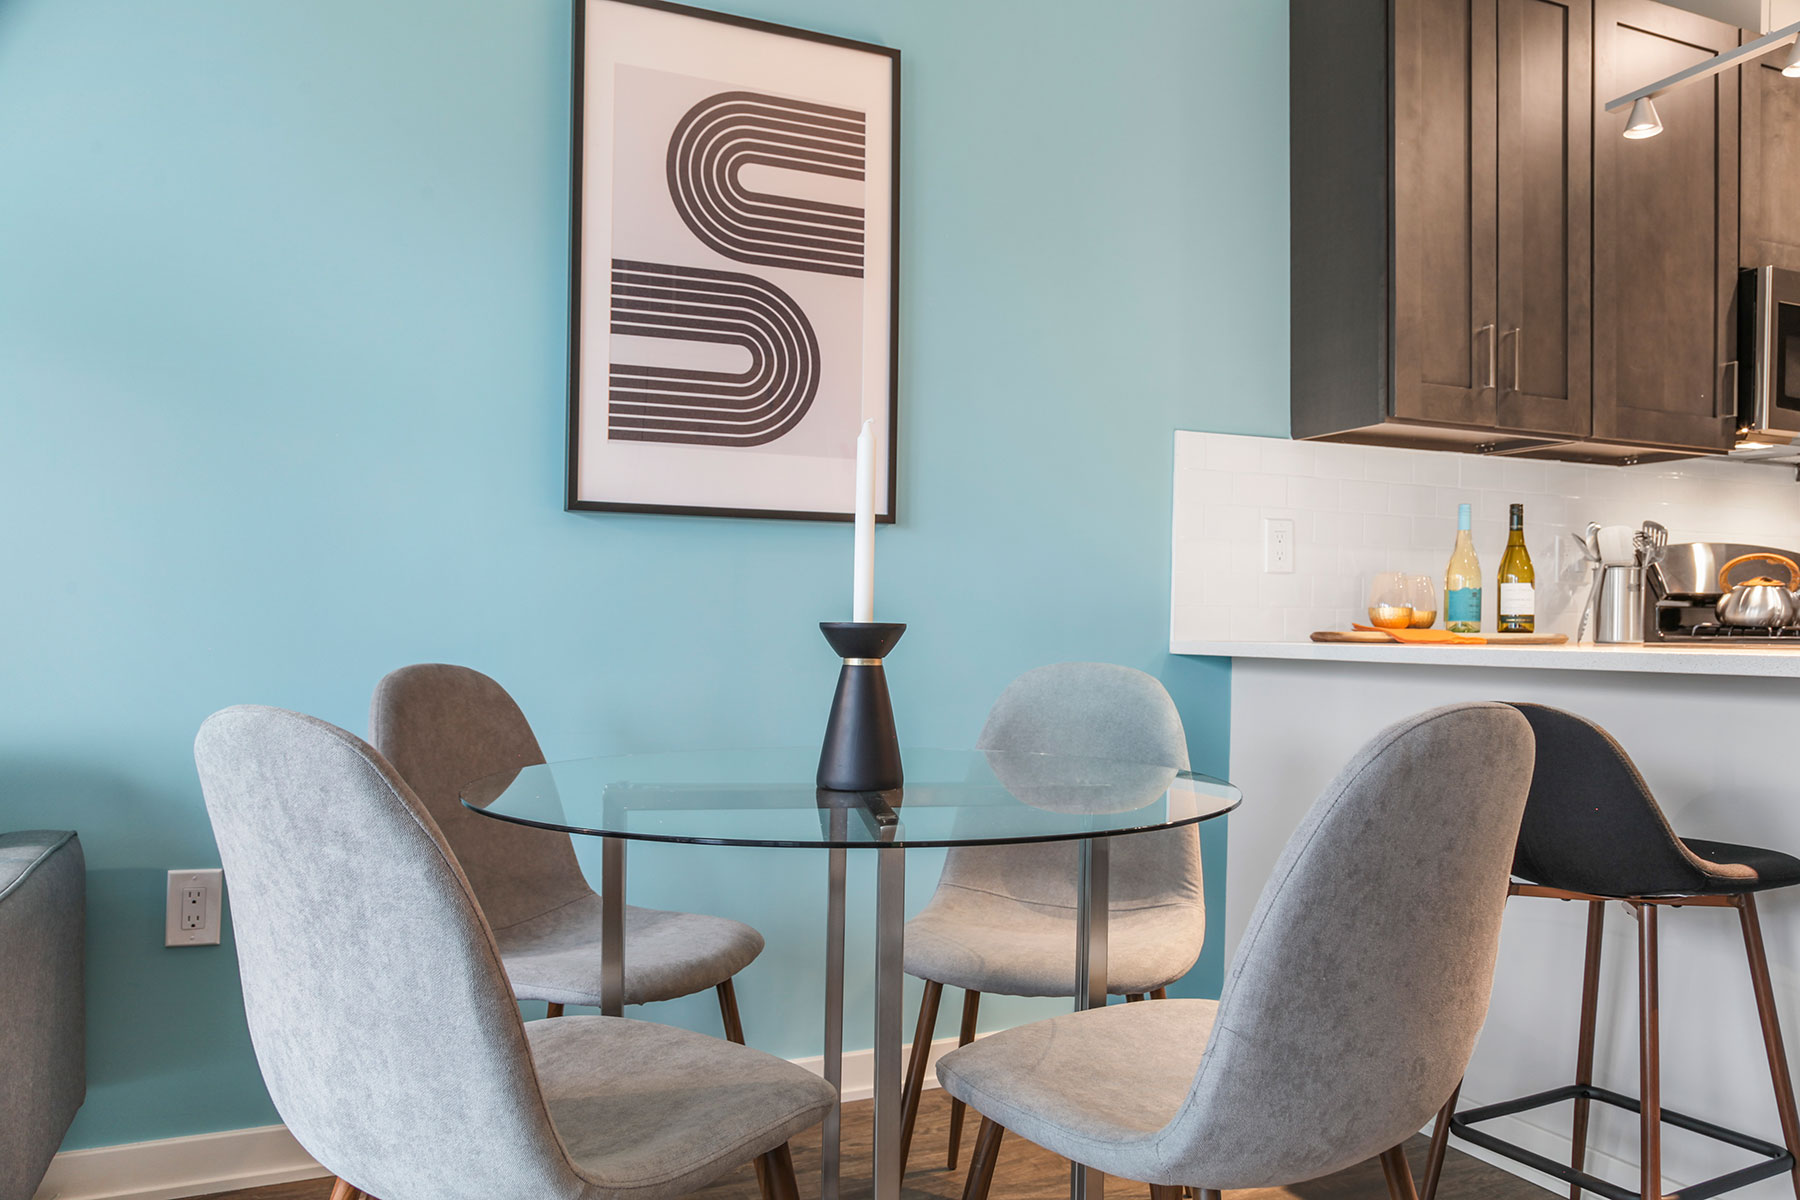 Detail of eat in glass table with 4 chairs near kitchen, light teal accent wall and wood floors